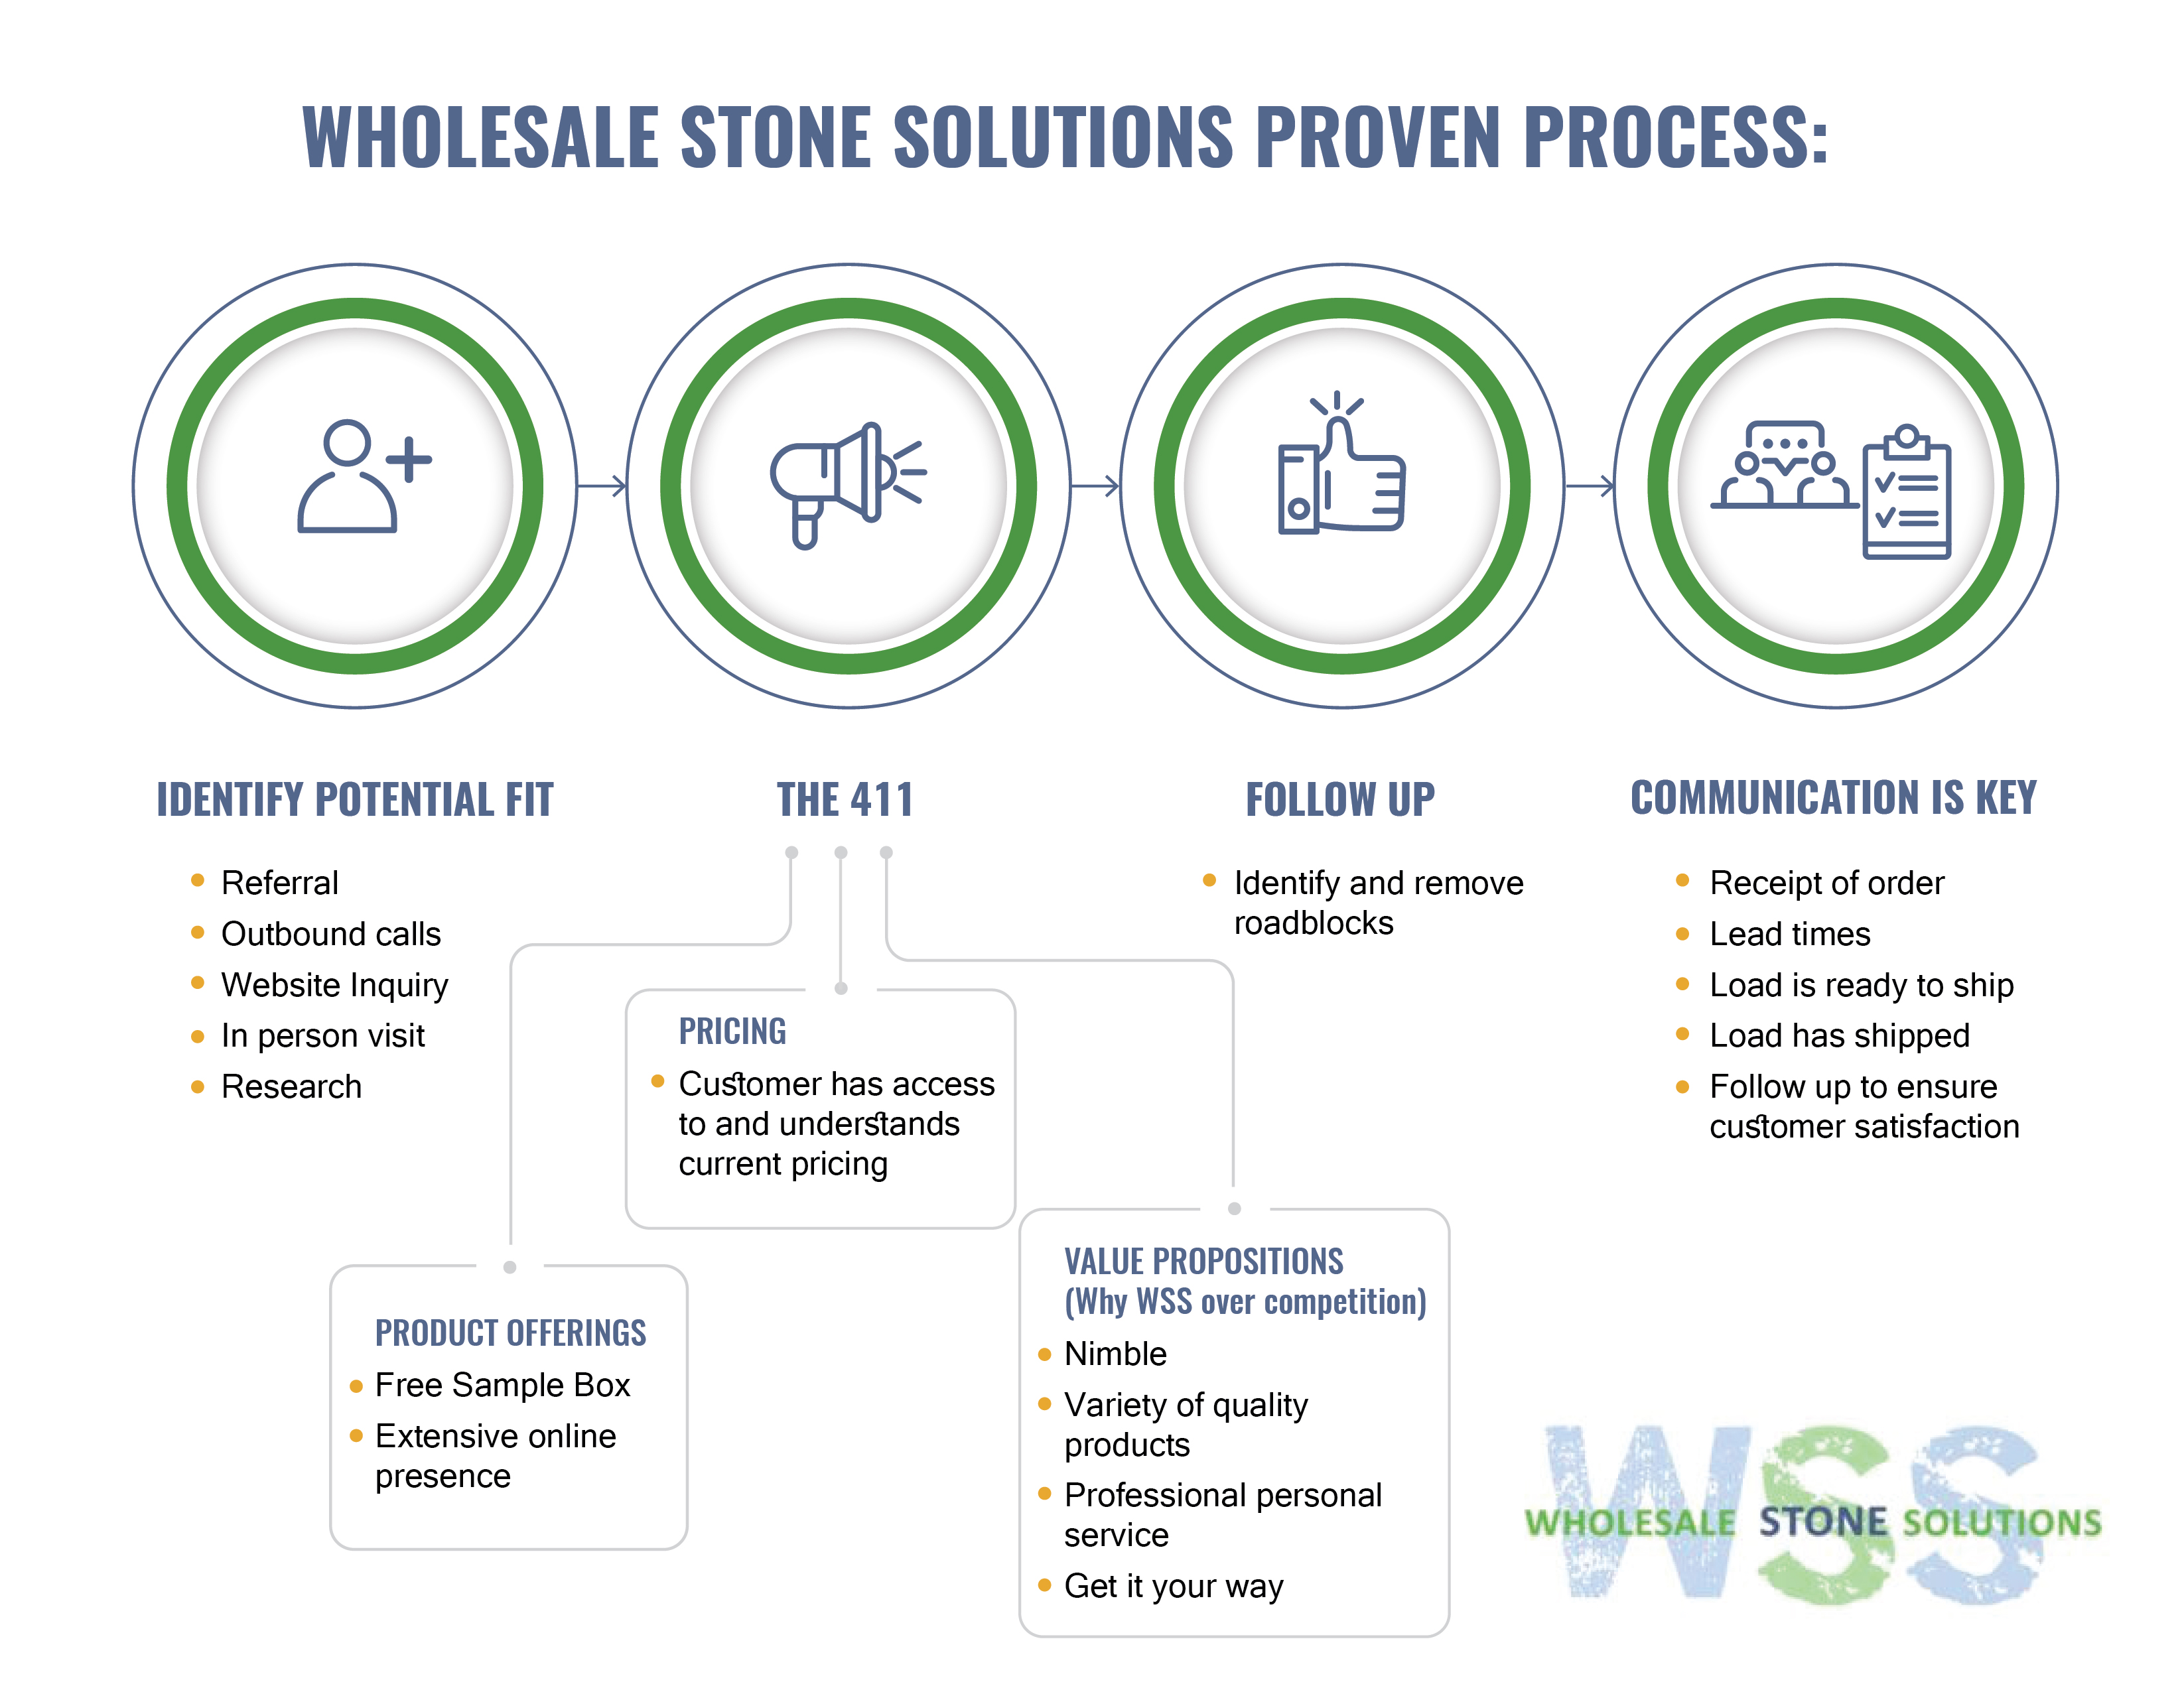 Wholesale Stone Solutions Proven Process